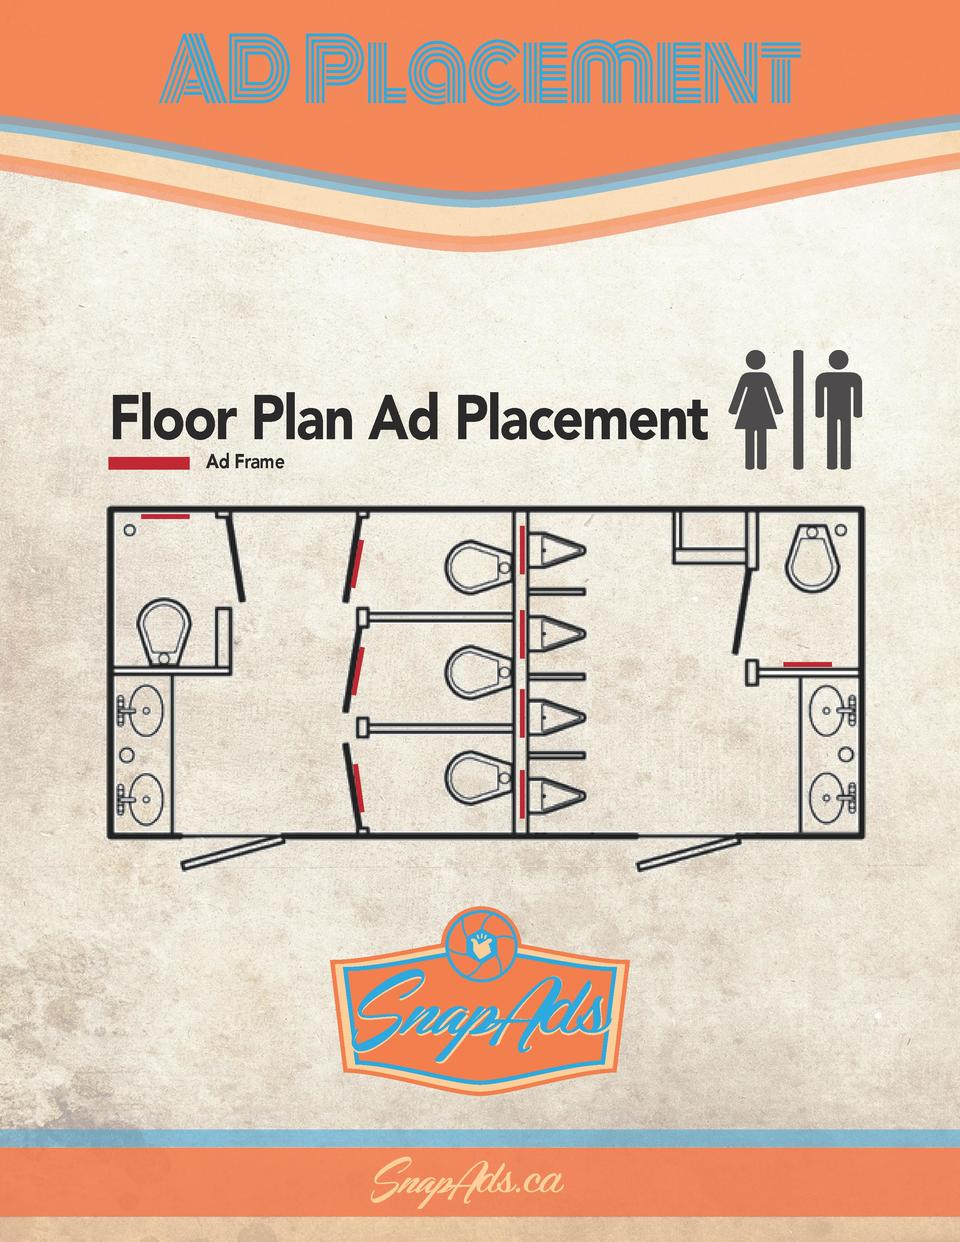 AD Placement  Floor Plan Ad Placement Ad Frame  SnapAds SnapAds.ca